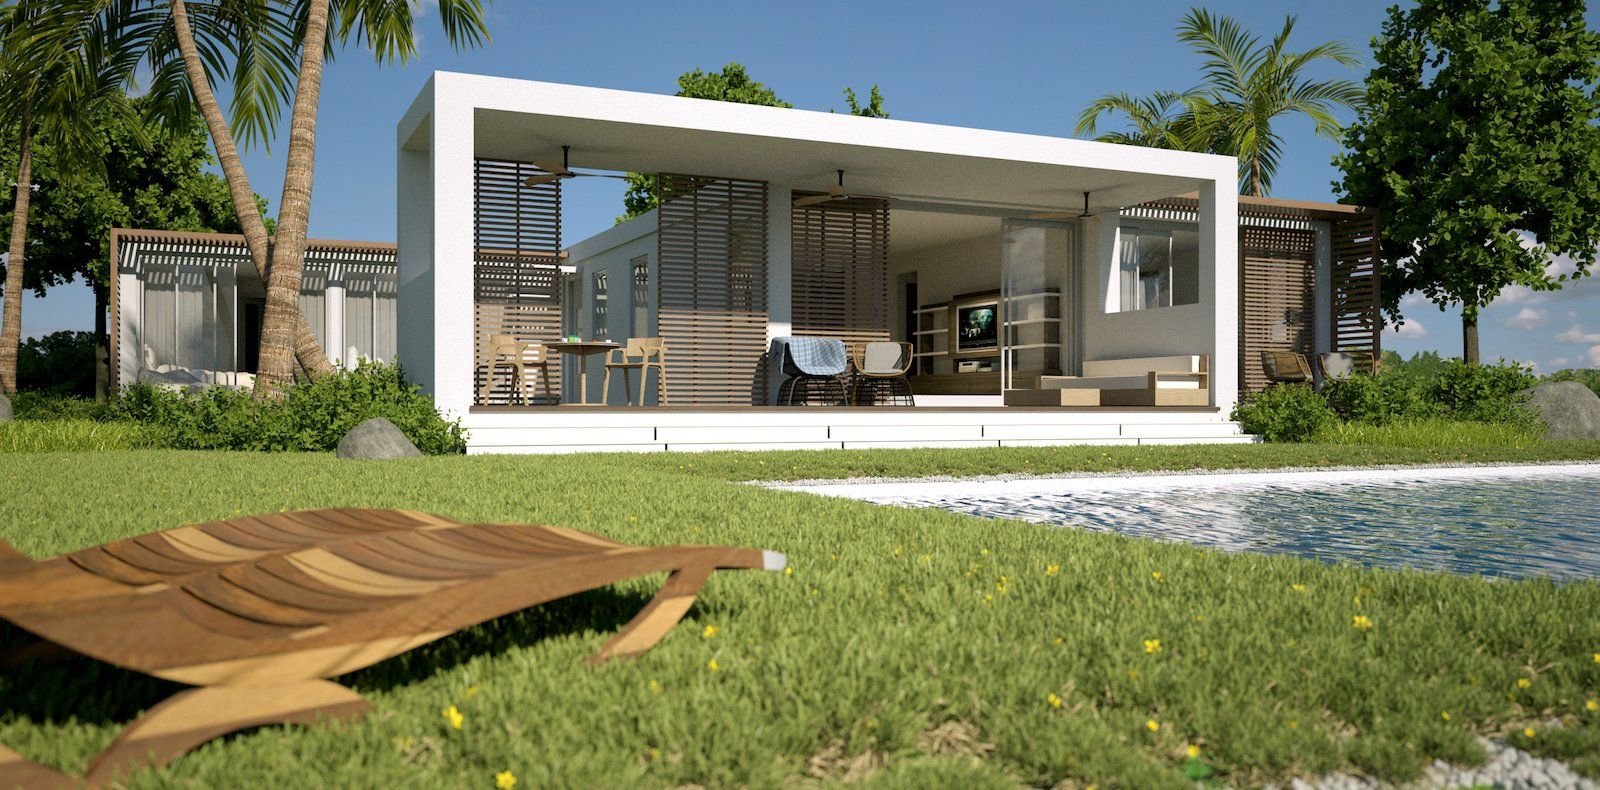 Cubicco Is Building Hurricane Proof Homes In Florida And The Caribbean Business Insider Hurricane Proof House Small Modular Homes Florida Home